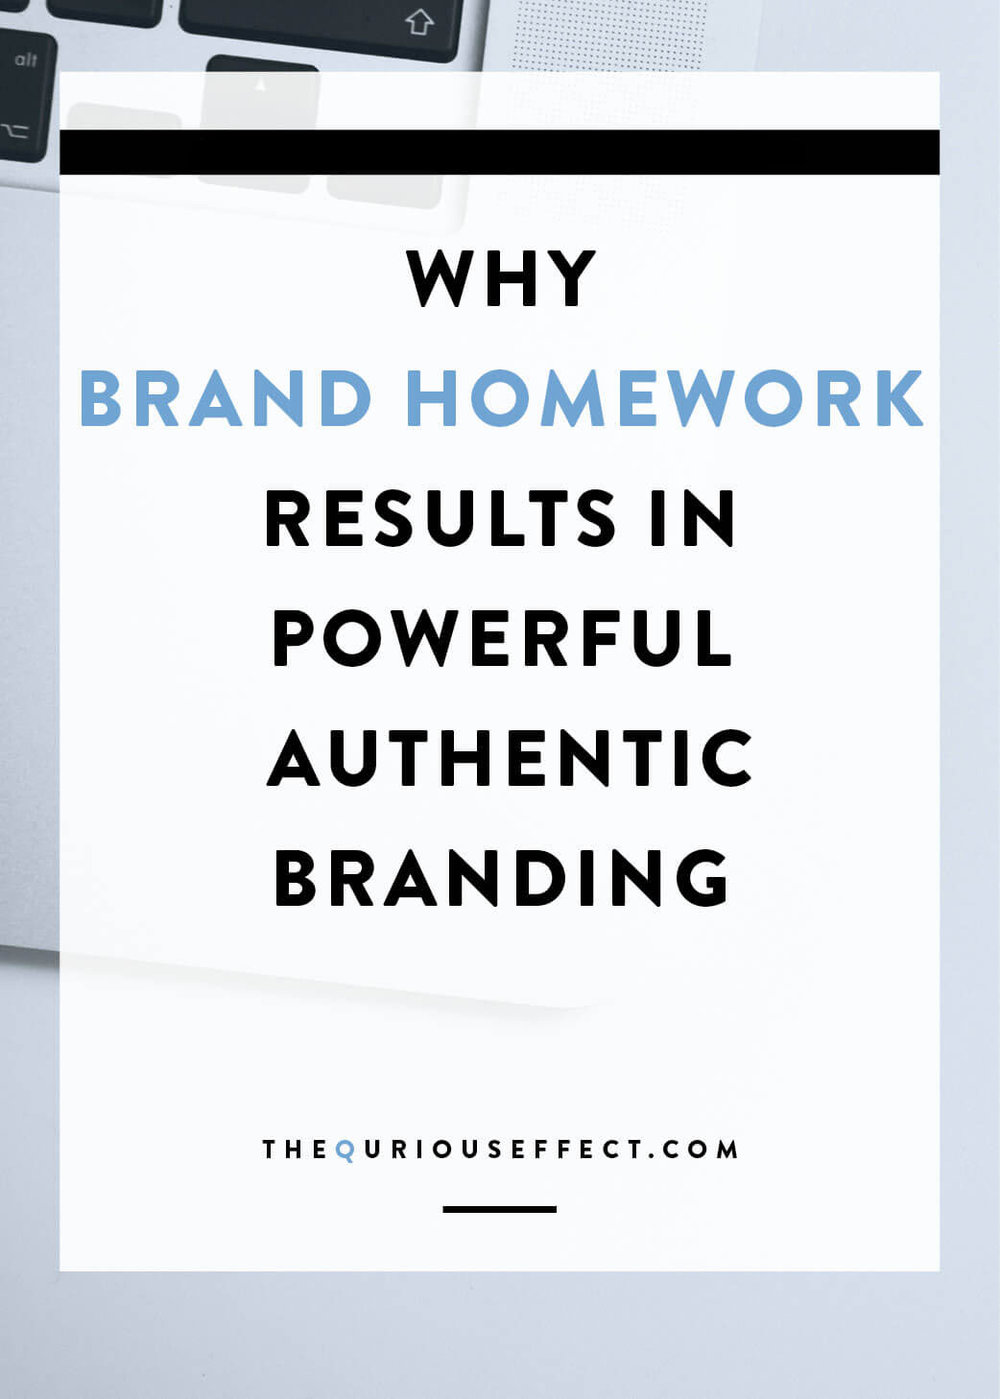 Why brand homework results in powerful, authentic branding by The Qurious Effect, a brand and squarespace web designer